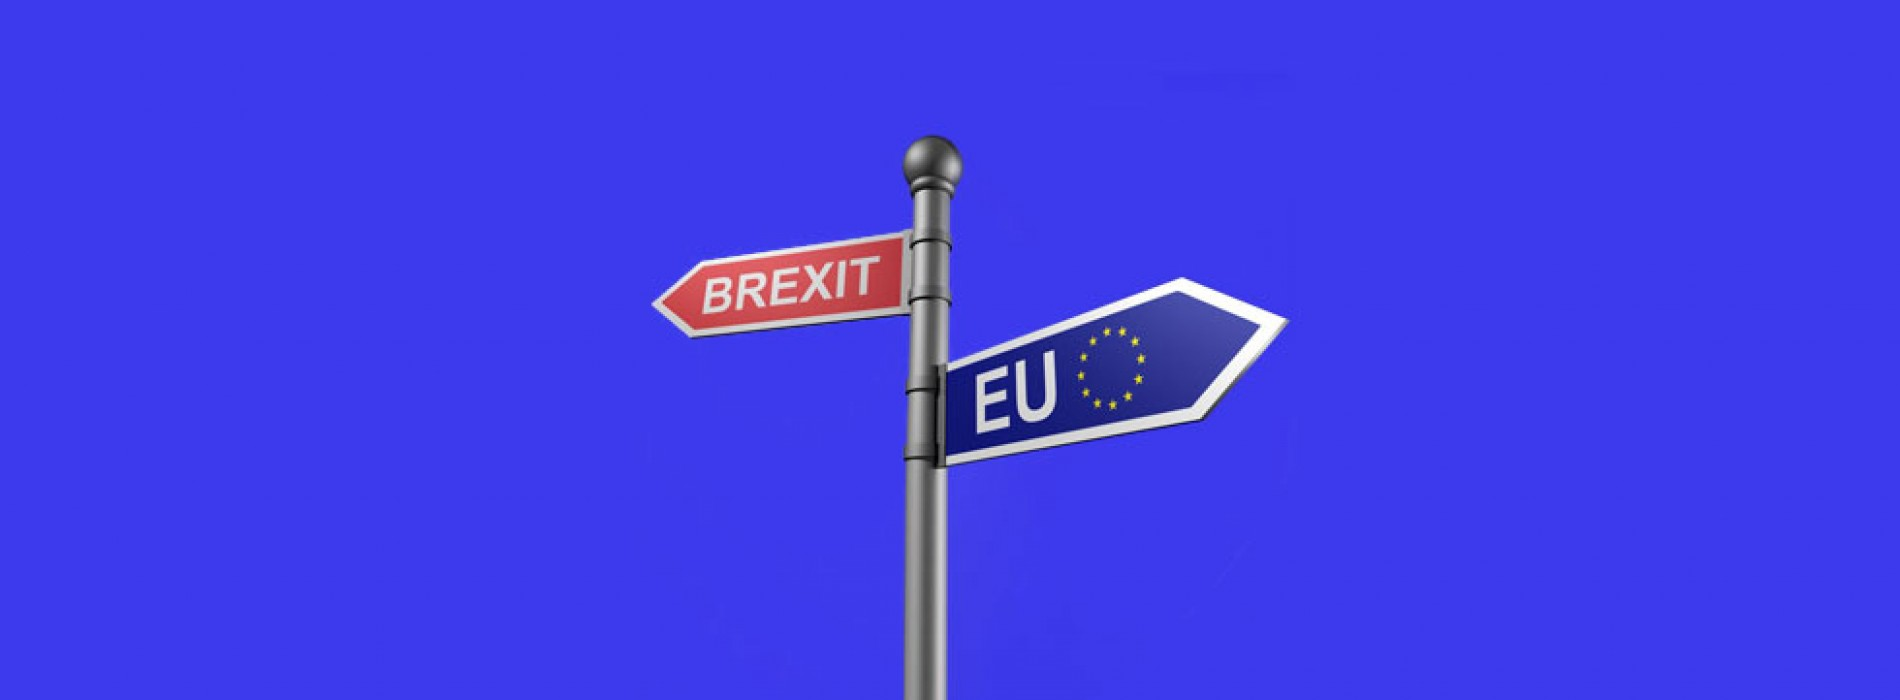 The biggest threat of Brexit is not to the UK but to the rest of Europe